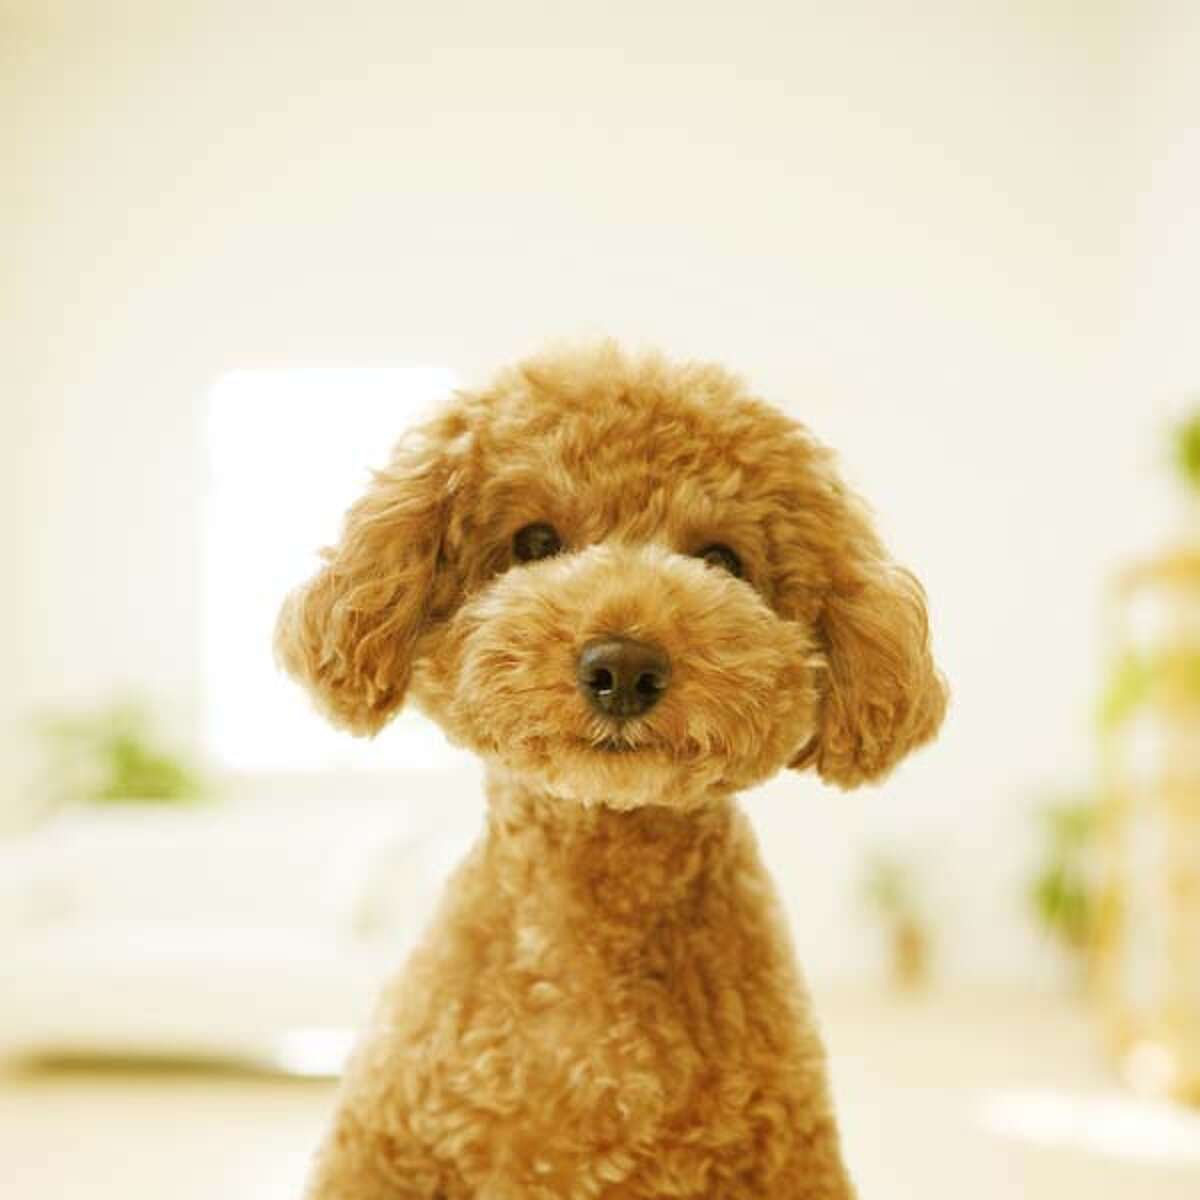 Toy Poodle The Poodle is an exceptionally smart breed that excels in all kinds of dog sport activities. The breed comes in three size varieties, with the Toy being the smallest. The breed's hypoallergenic coat may reduce allergic reactions, but requires regular grooming maintenance.